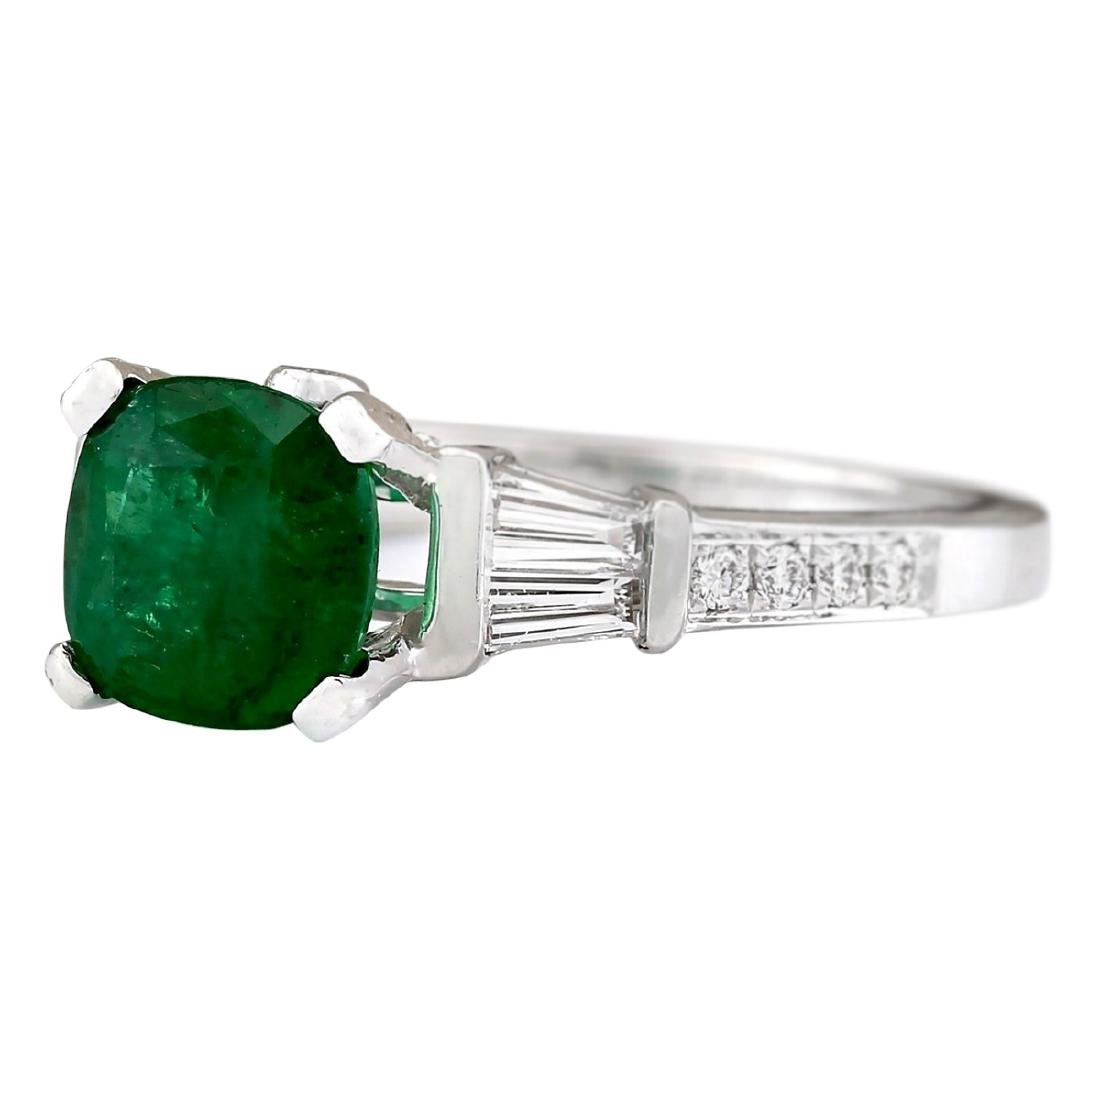 2.38 CTW Natural Emerald And Diamond Ring In 18K White - 2